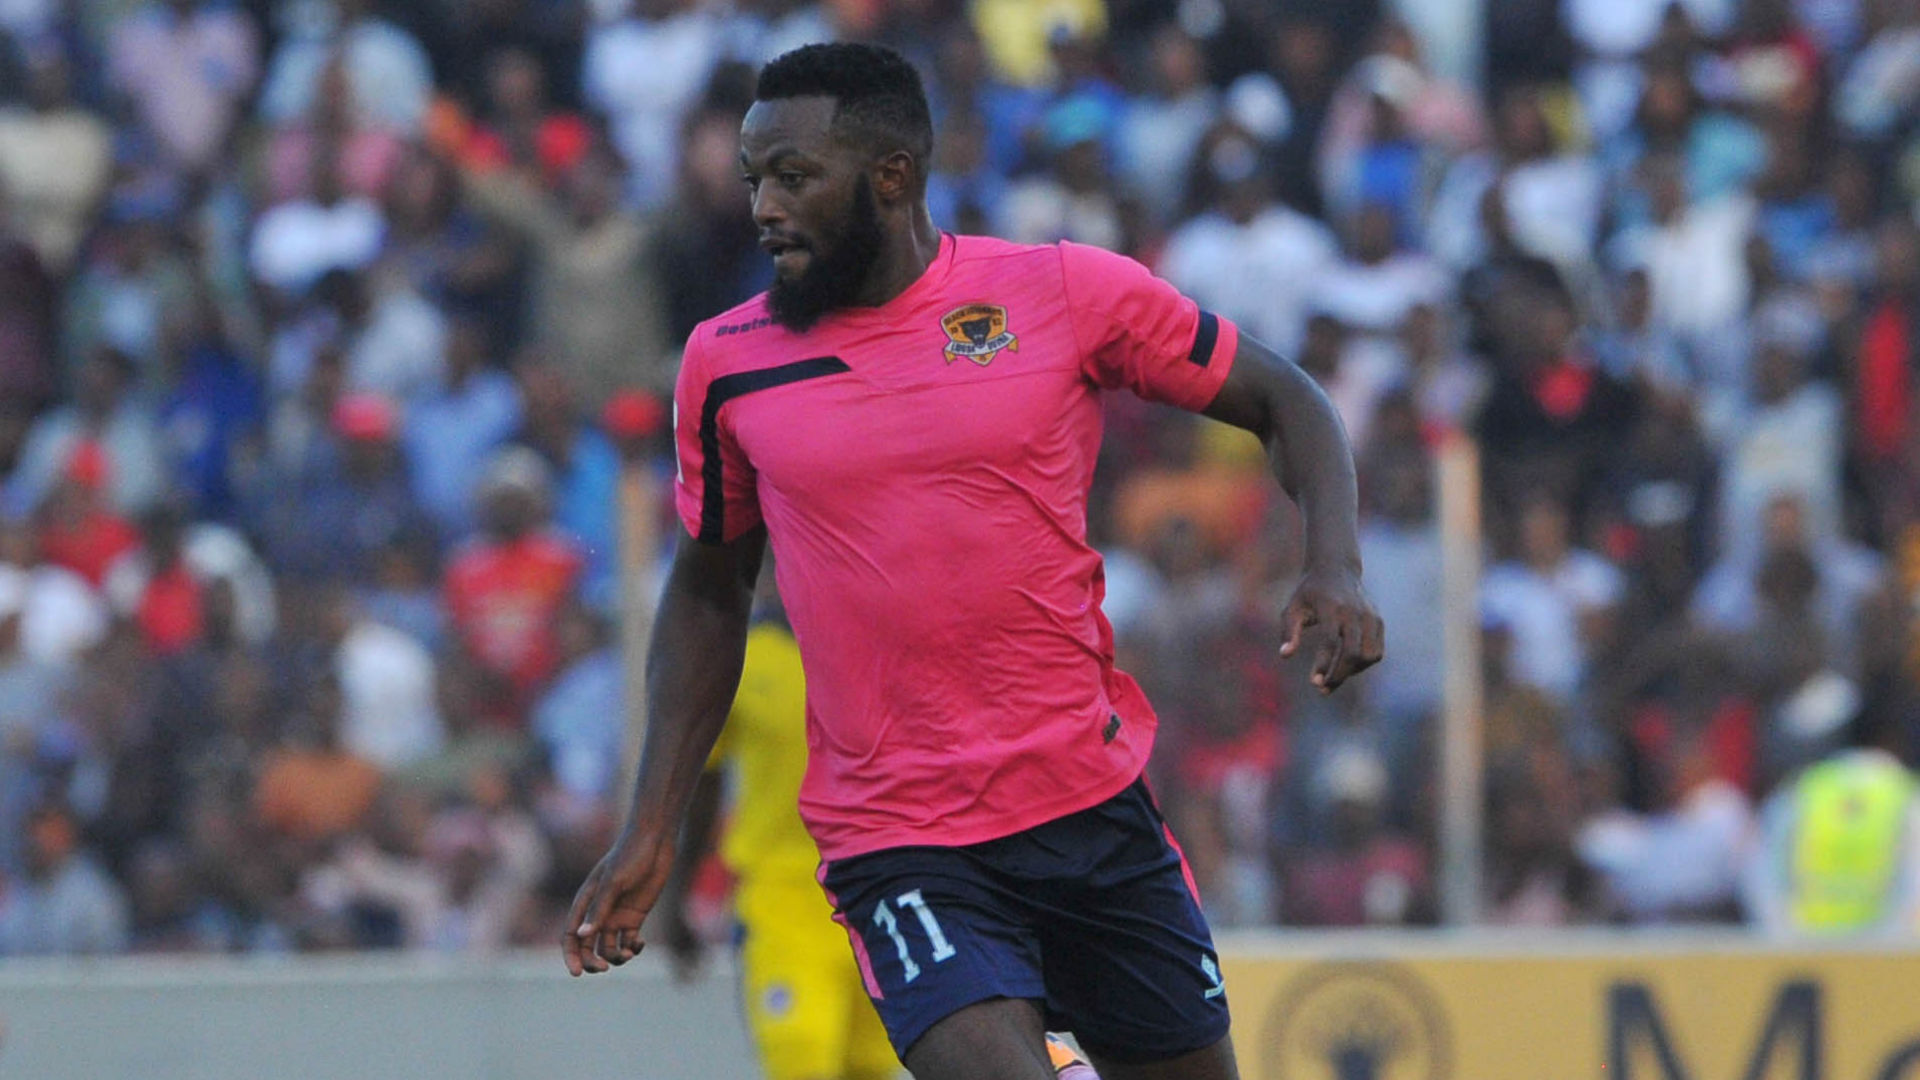 Mwape Musonda, Black Leopards, May 2018